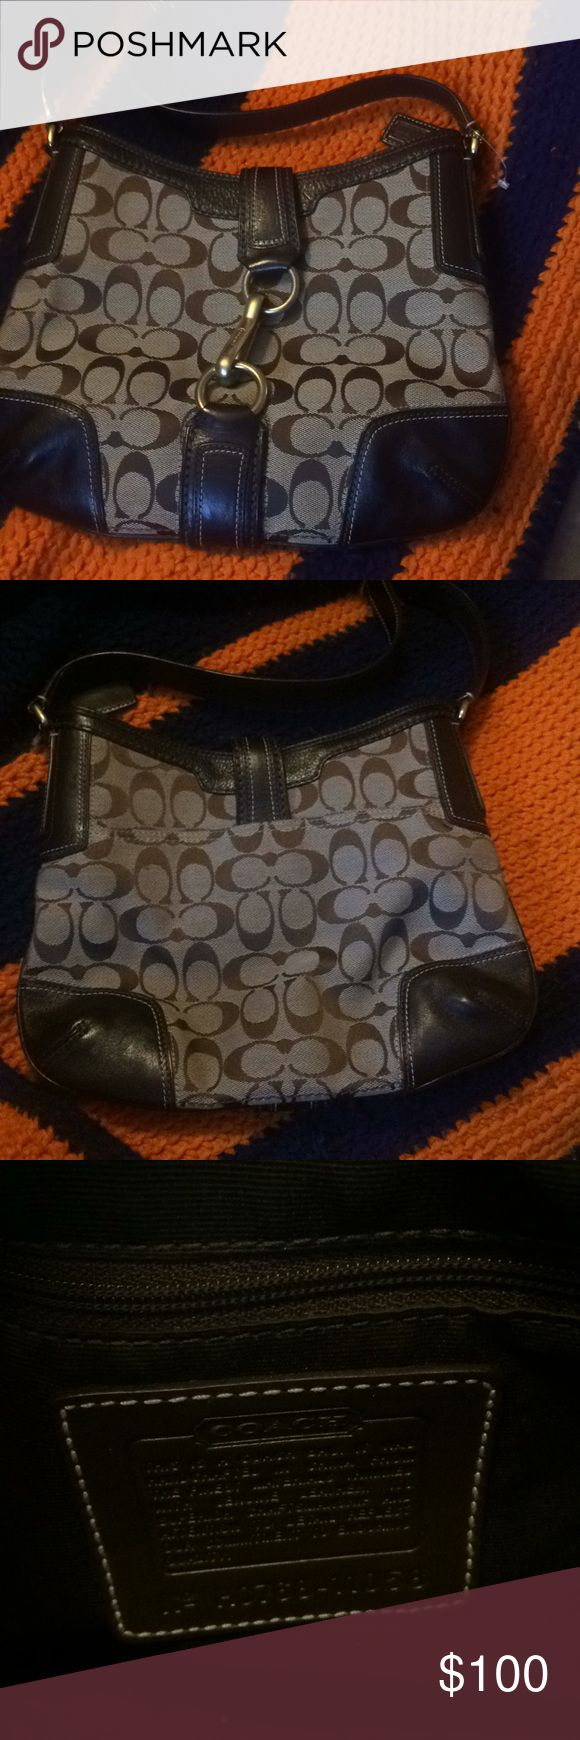 Authentic coach hobo purse Brand new authentic coach purse. Comes with a gift bag to hold the purse. Coach purse number H0768-11058. Coach Bags Hobos